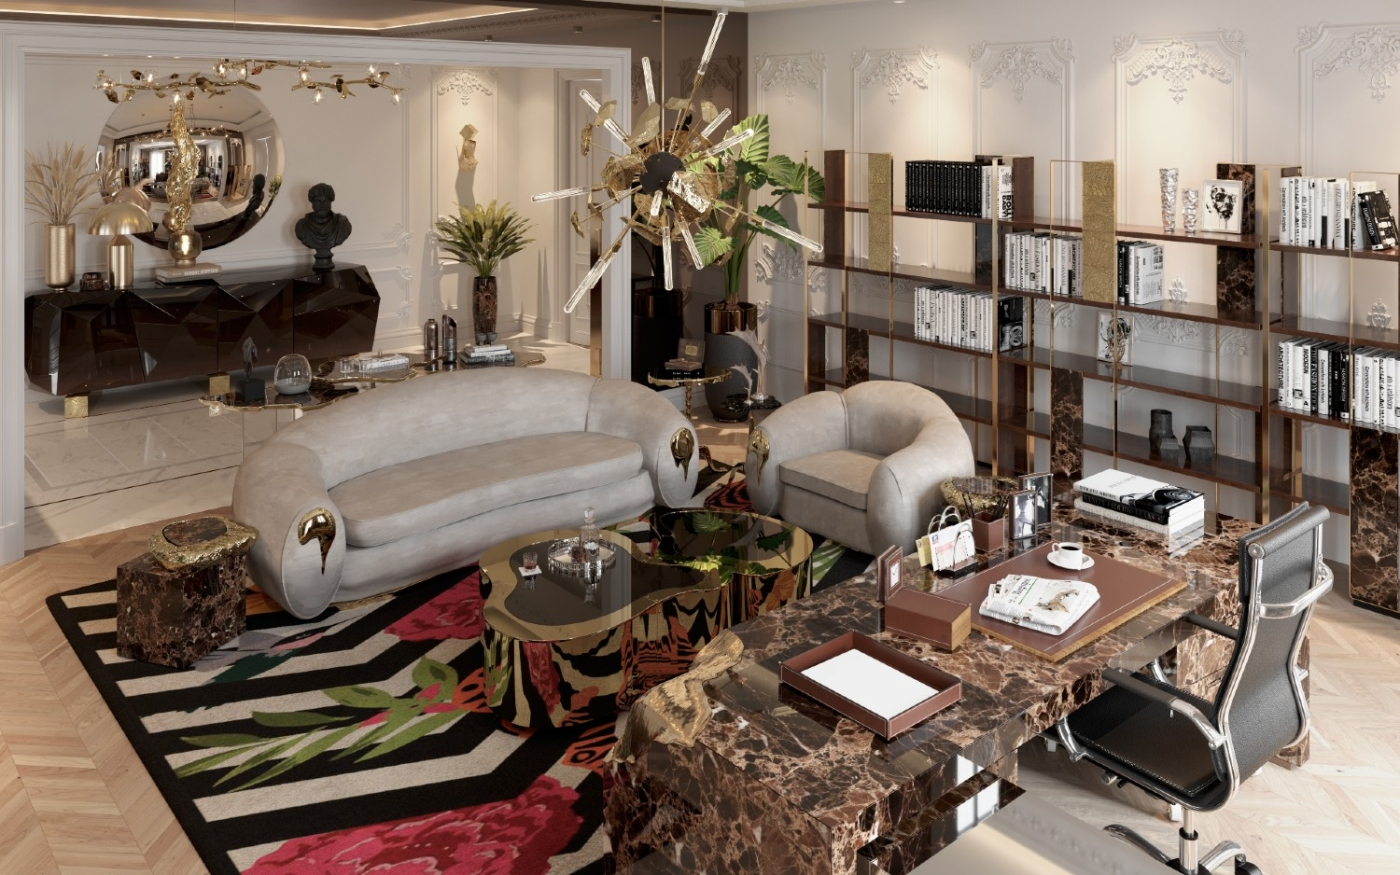 A Luxury Office Setting You'll Want To Work In Everyday, And How To Achieve It! ft luxury office A Luxury Office Setting You'll Want To Work In Everyday, And How To Achieve It! A Luxury Office Setting Youll Want To Work In Everyday And How To Achieve It ft 1400x875